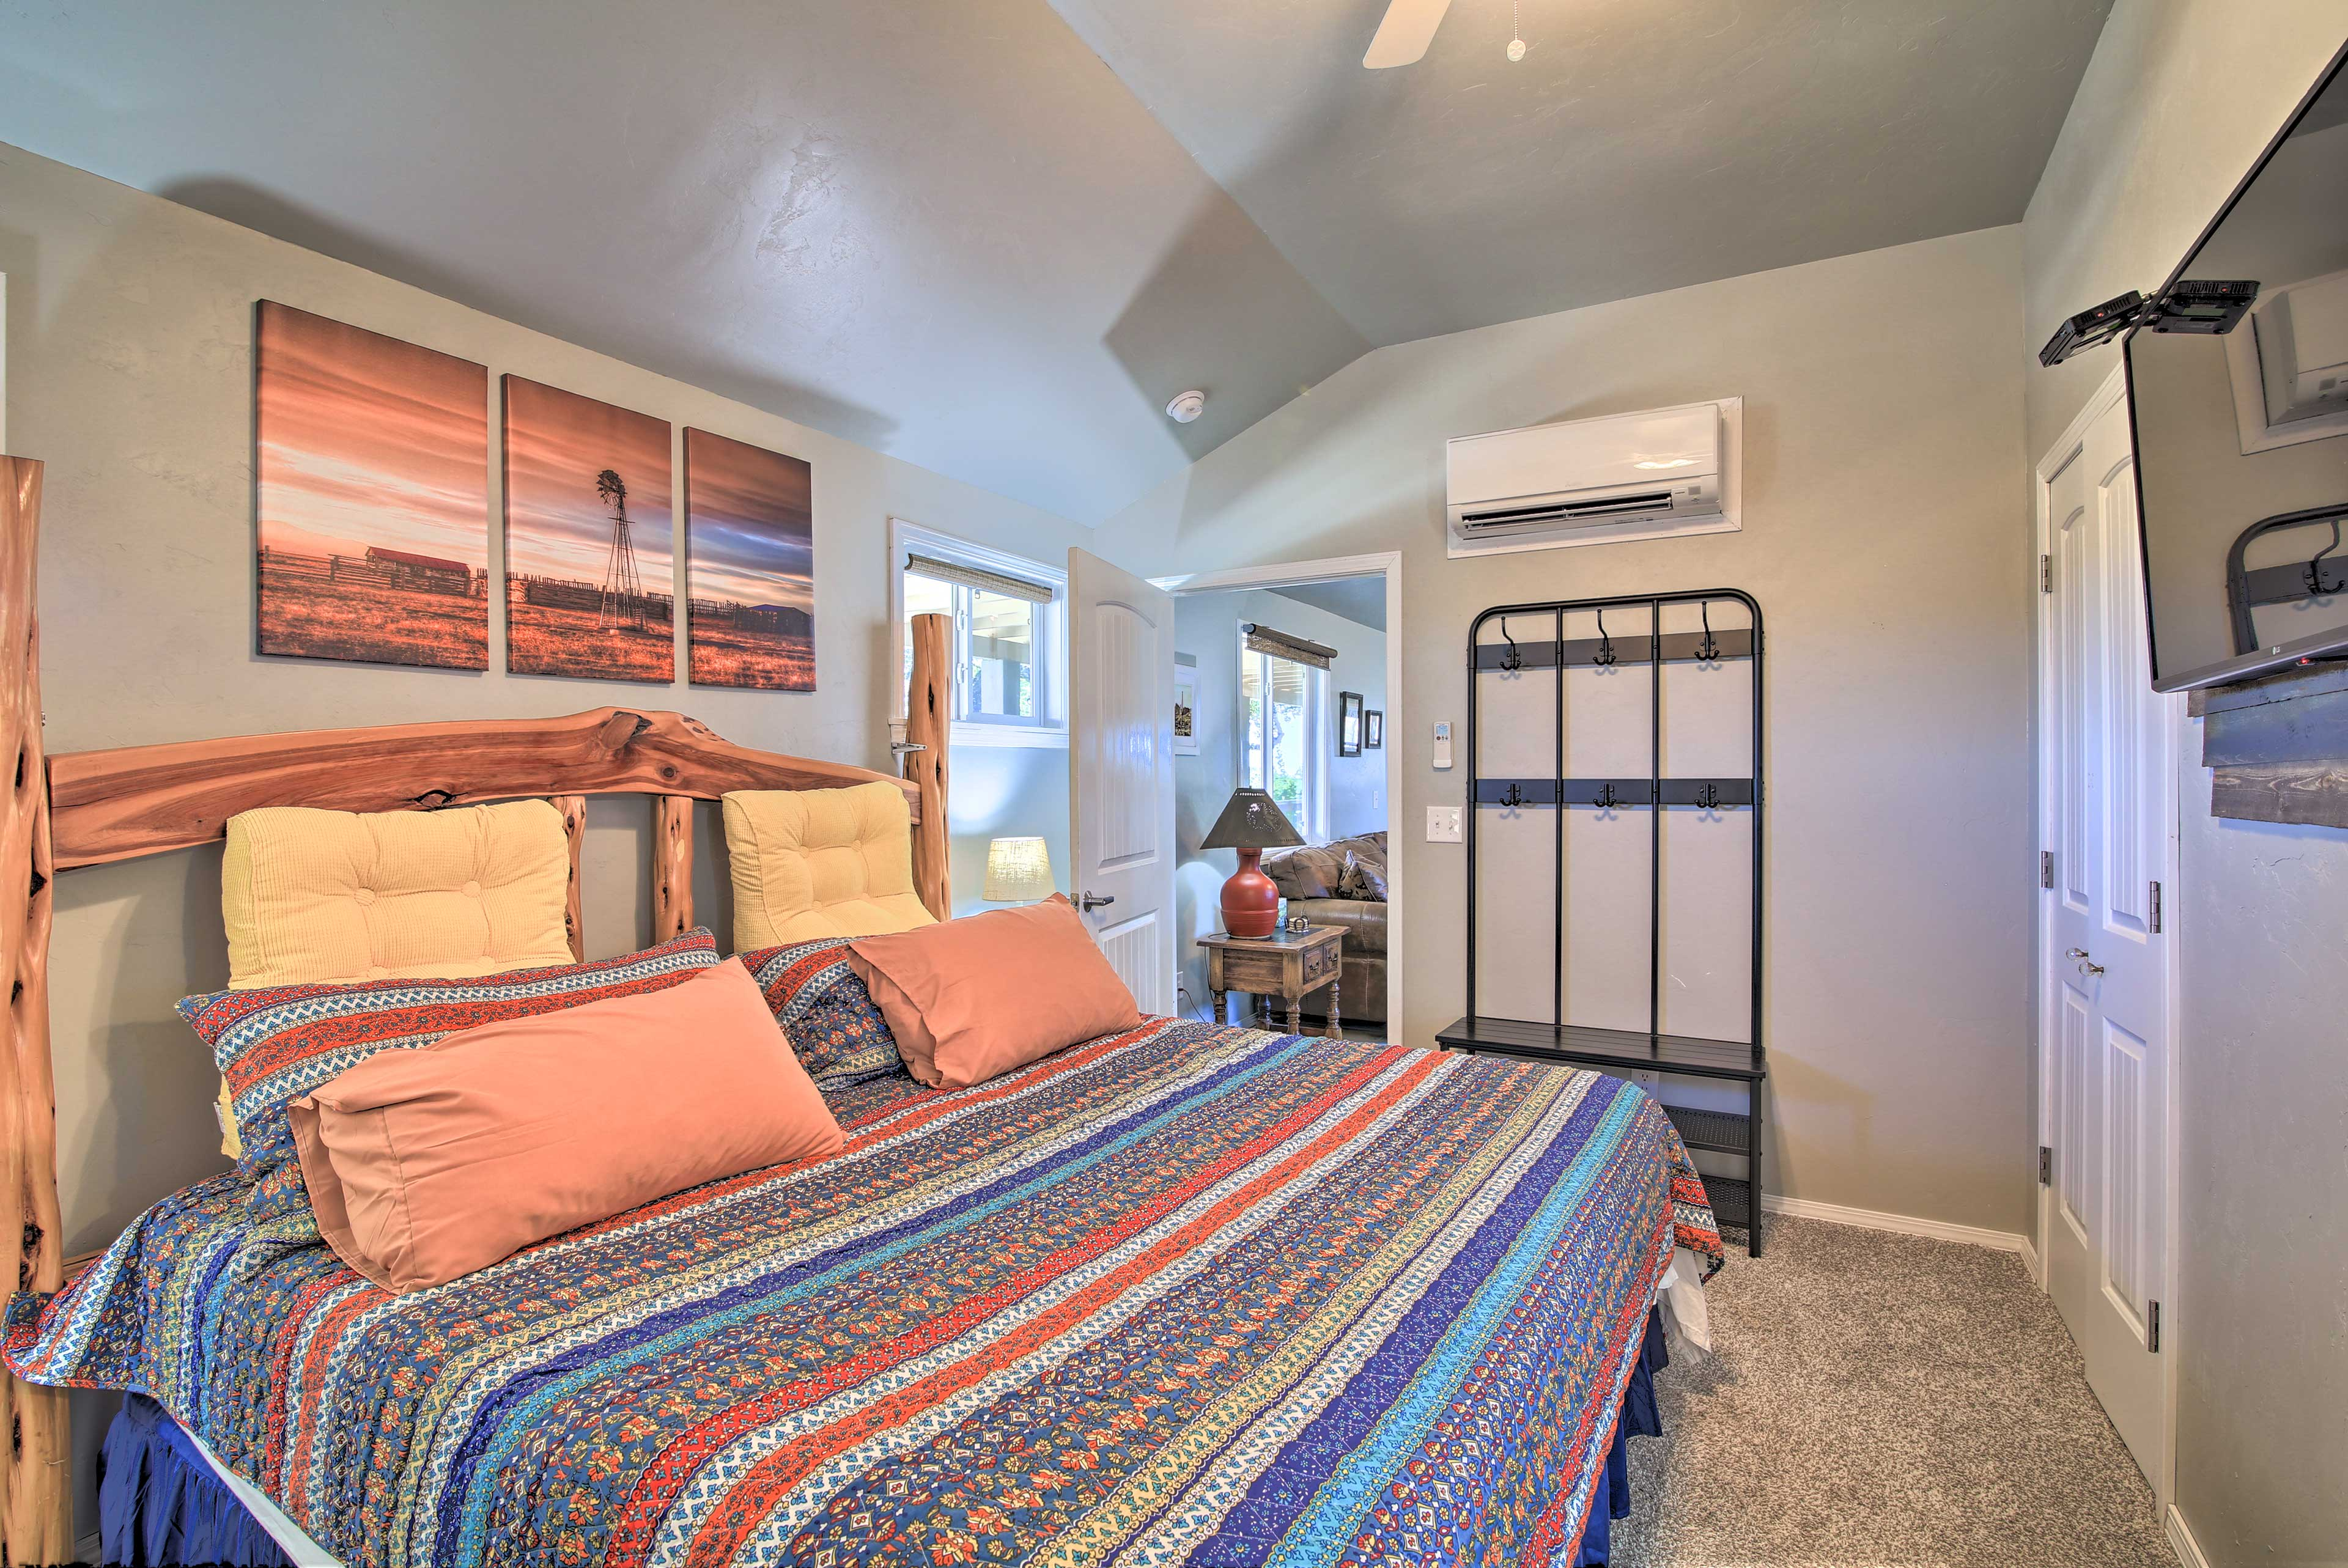 Stay cool in the Texas heat with the wall A/C units in each room.